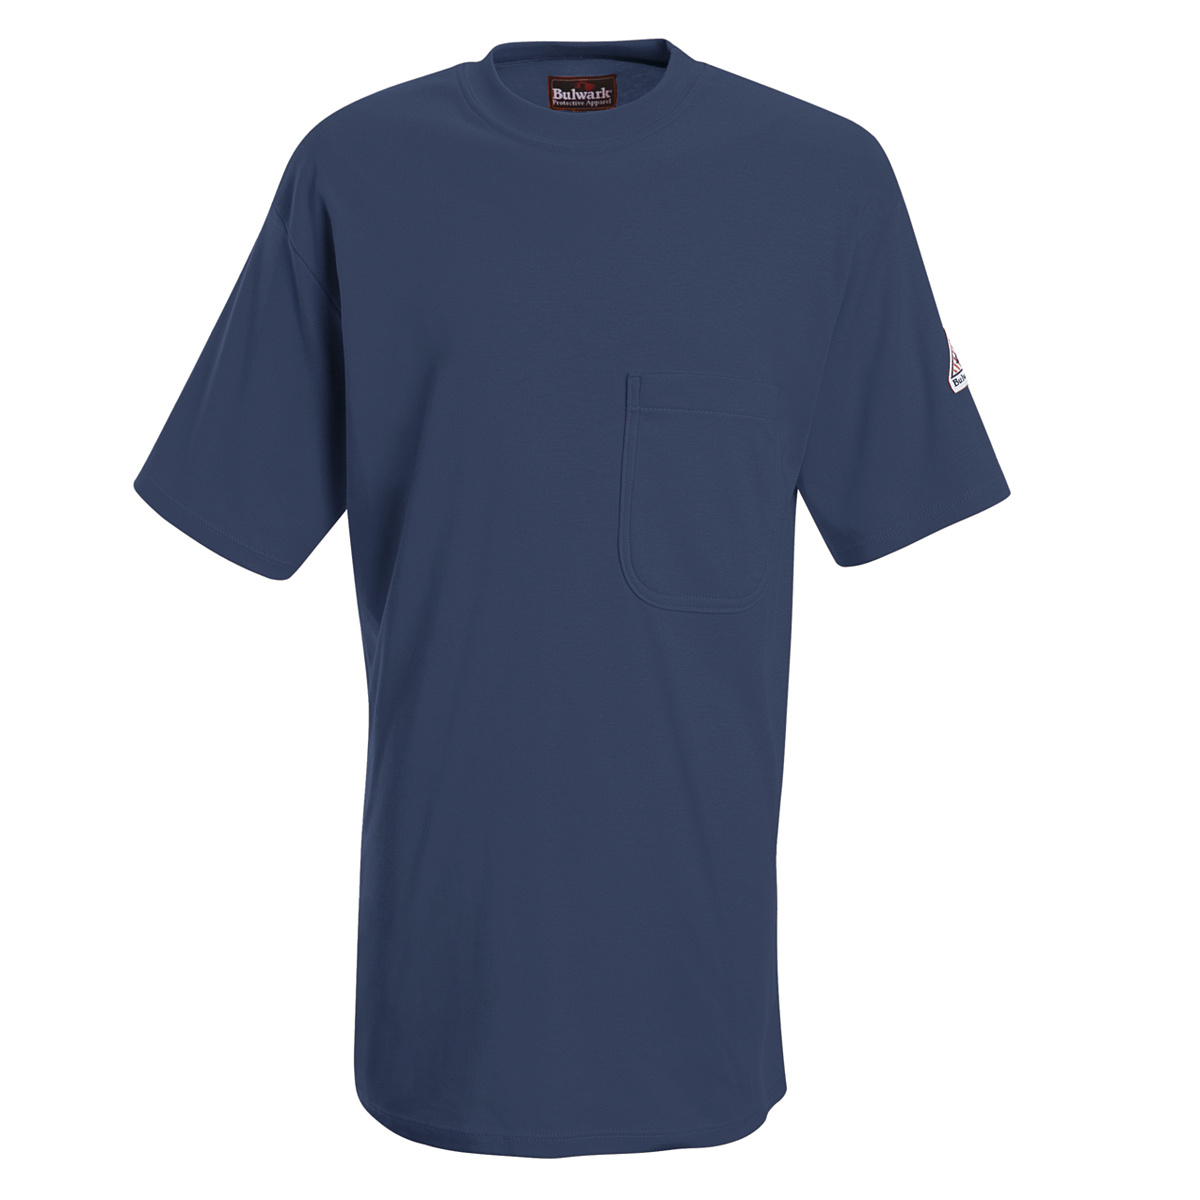 Airgas r30set8nvssll bulwark large tall navy cotton for Bulwark flame resistant shirts